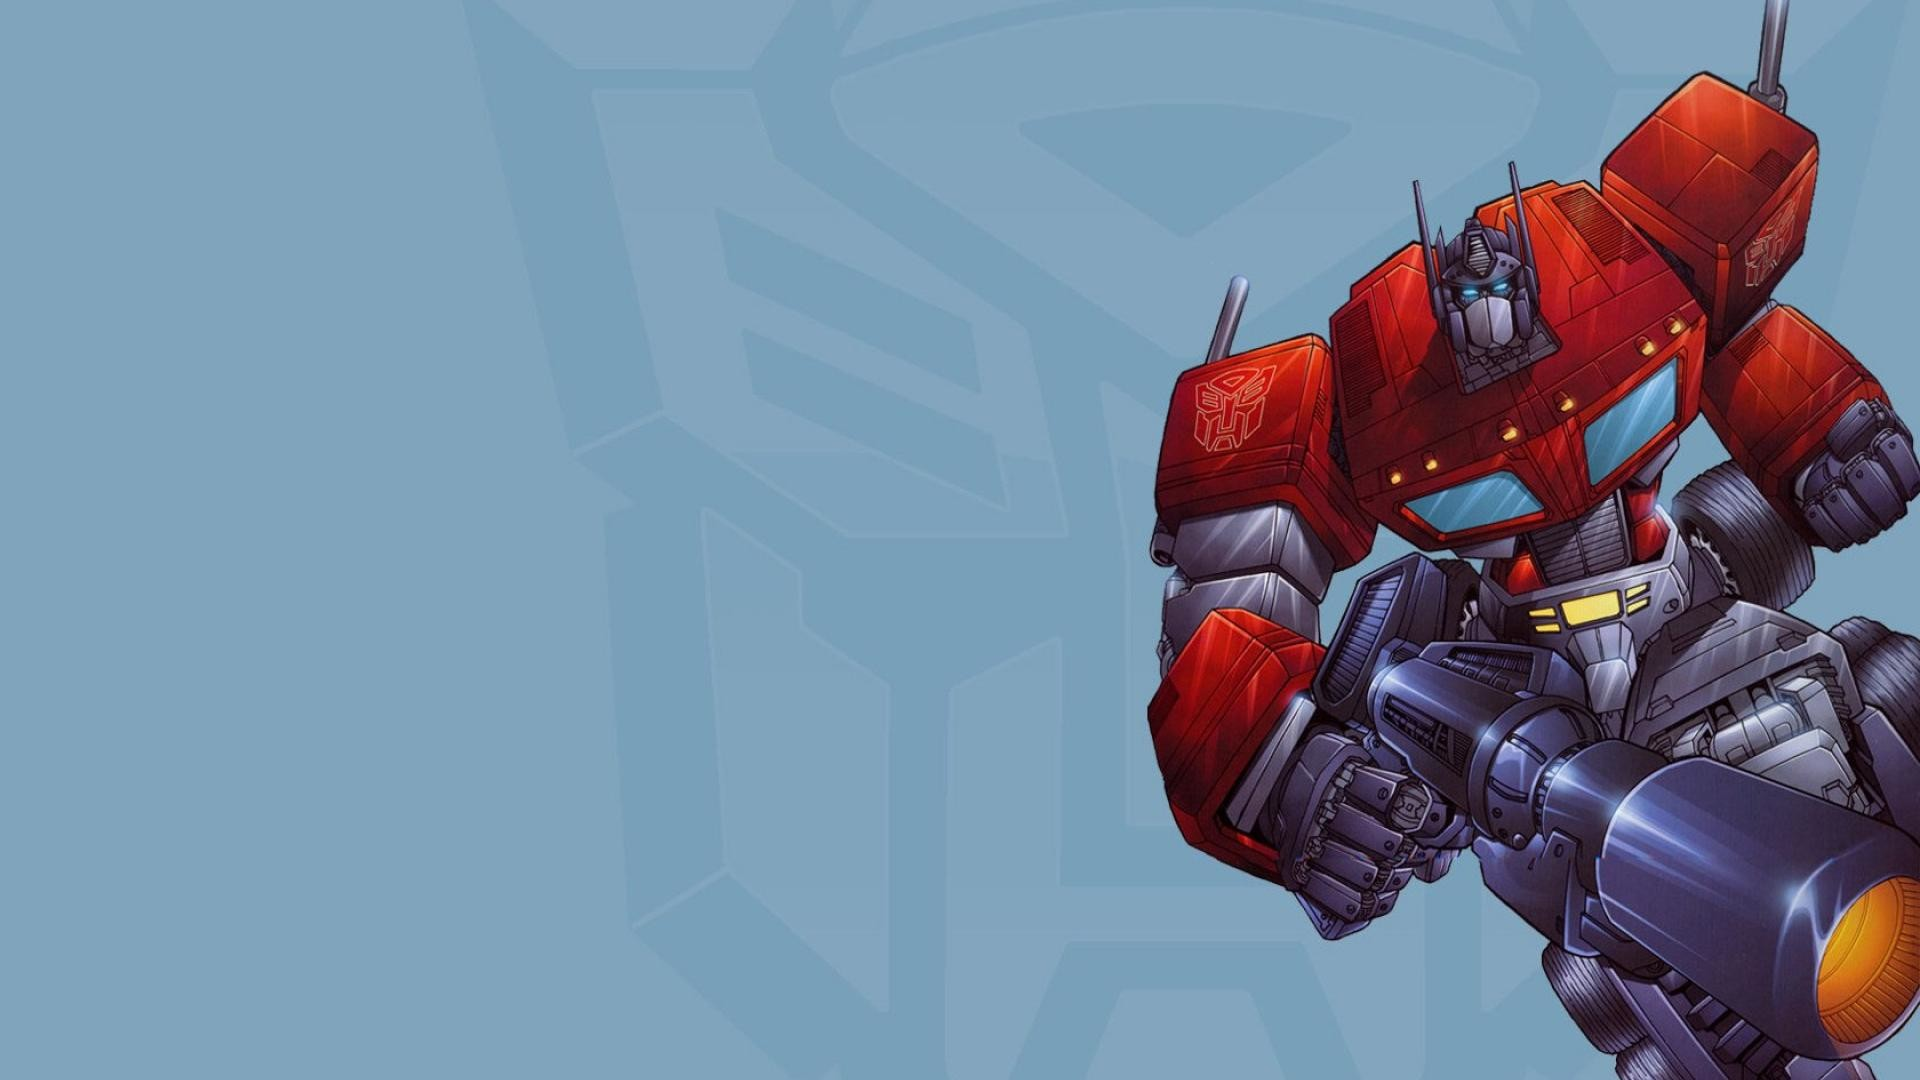 Transformers Fall Of Cybertron Wallpaper 1920x1080 G1 Transformers Wallpaper Hd 66 Images